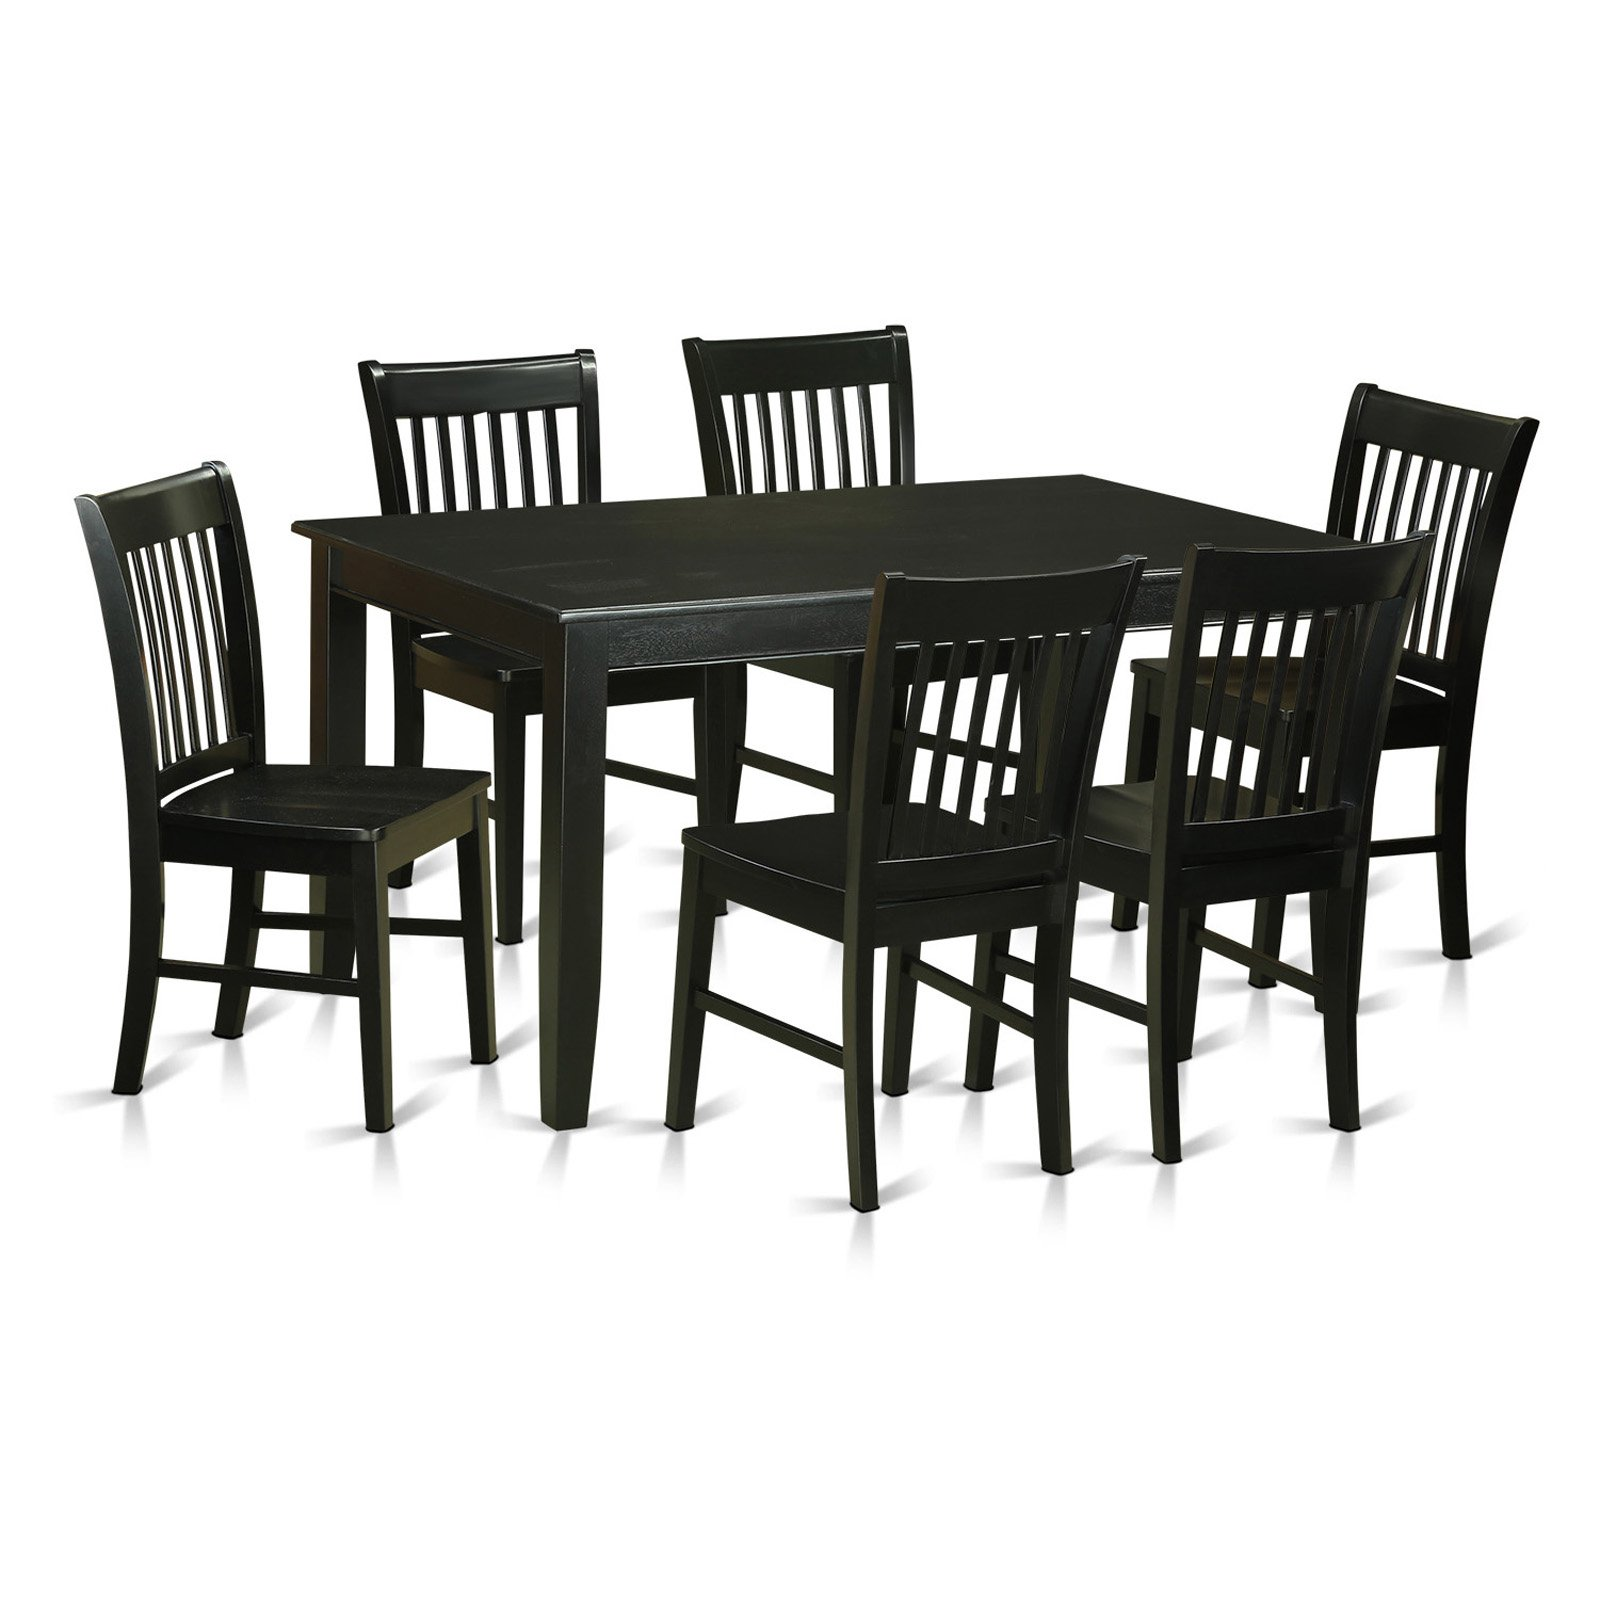 East West Furniture Dudley 7 Piece Rectangular Dining Table Set with Norfolk Chairs